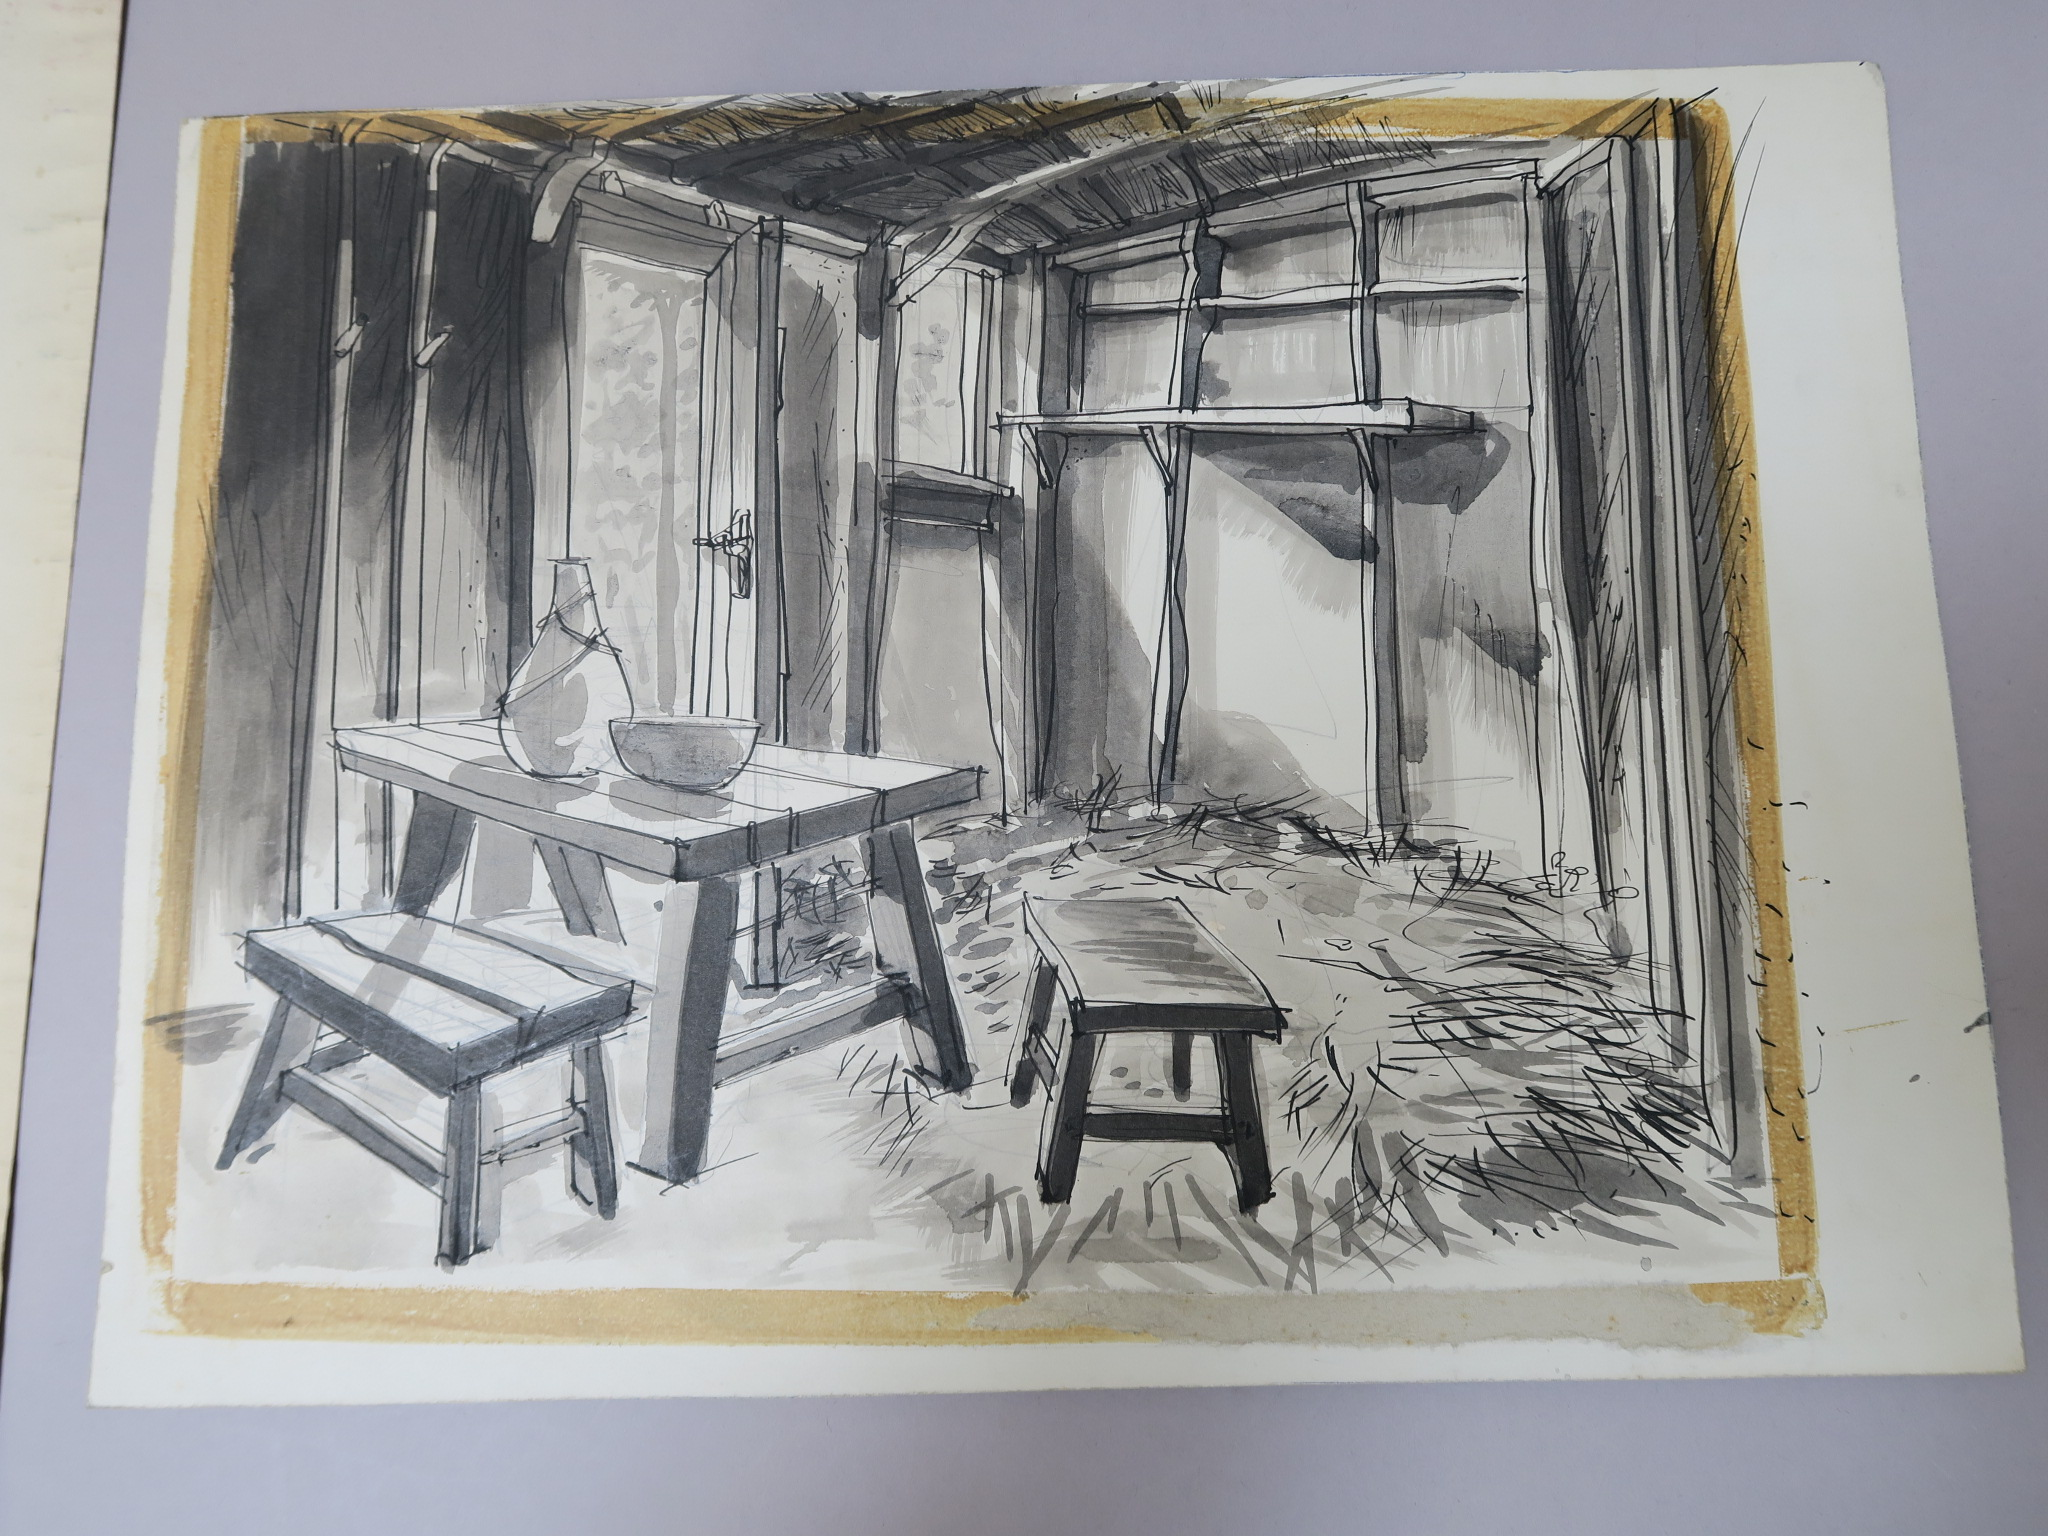 Lot 104 - Ivanhoe four original illustrations pre-production artwork and set designs for the film Ivanhoe, one